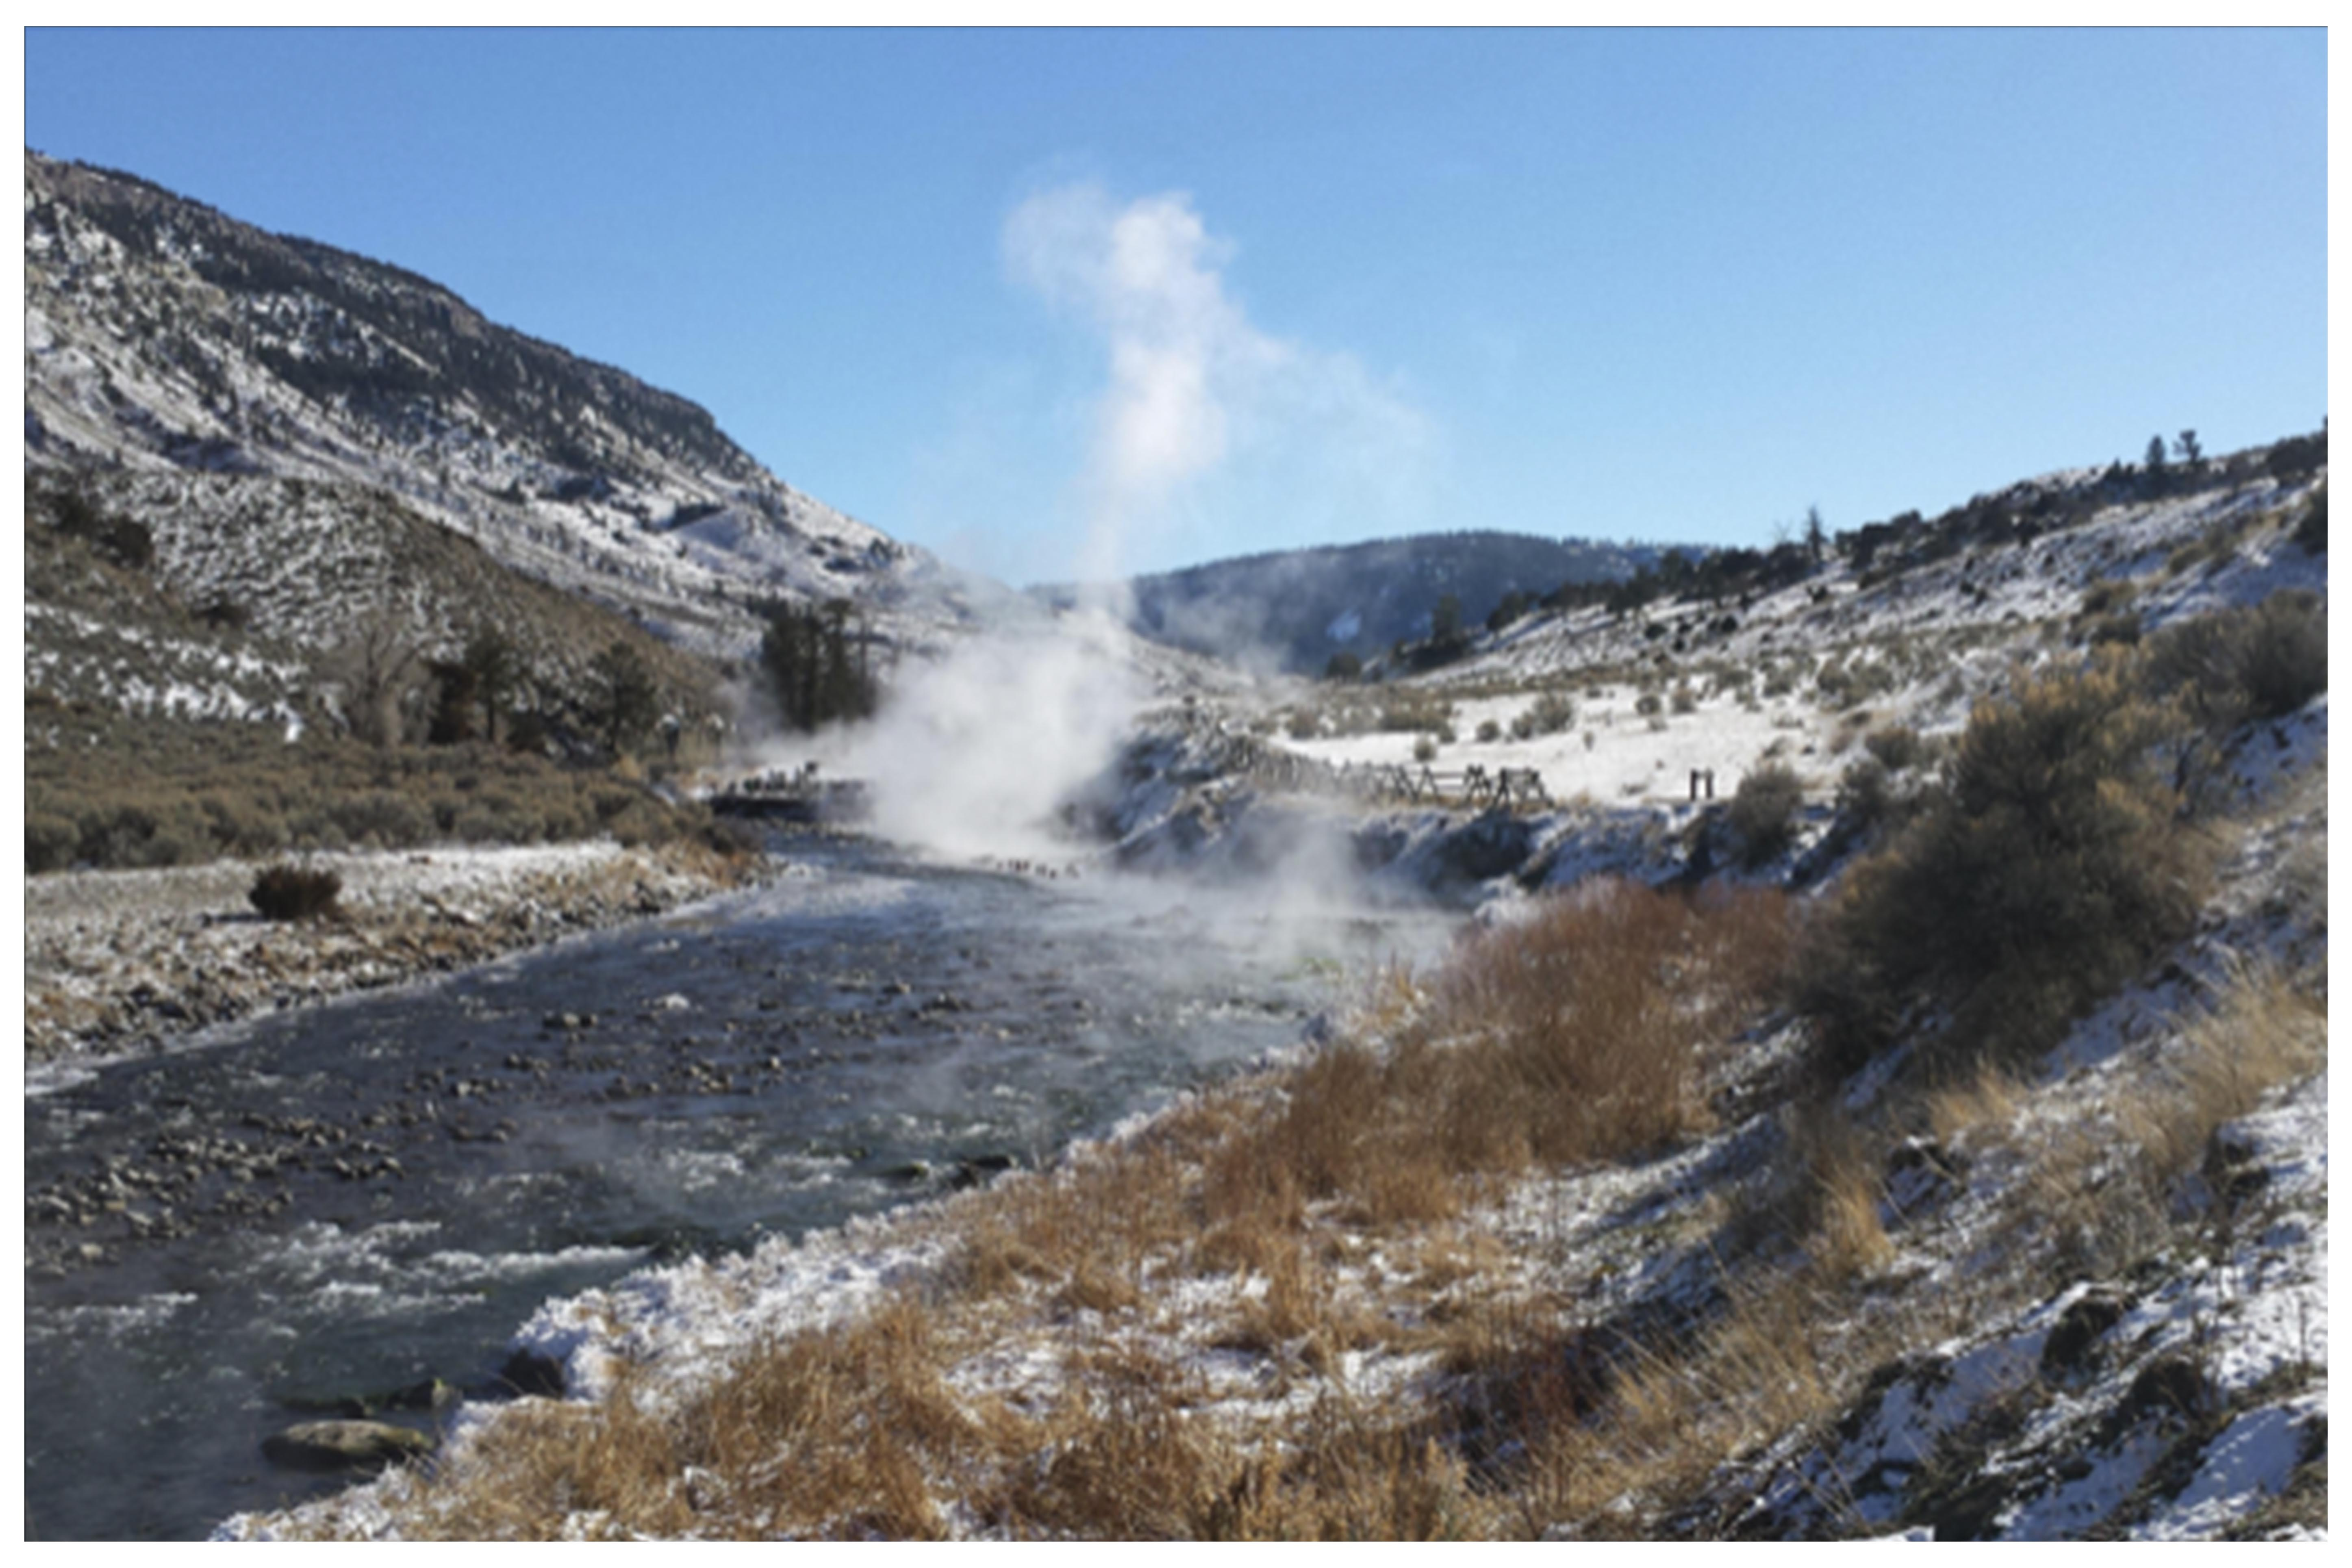 CVB_Hotsprings-2020-8_c